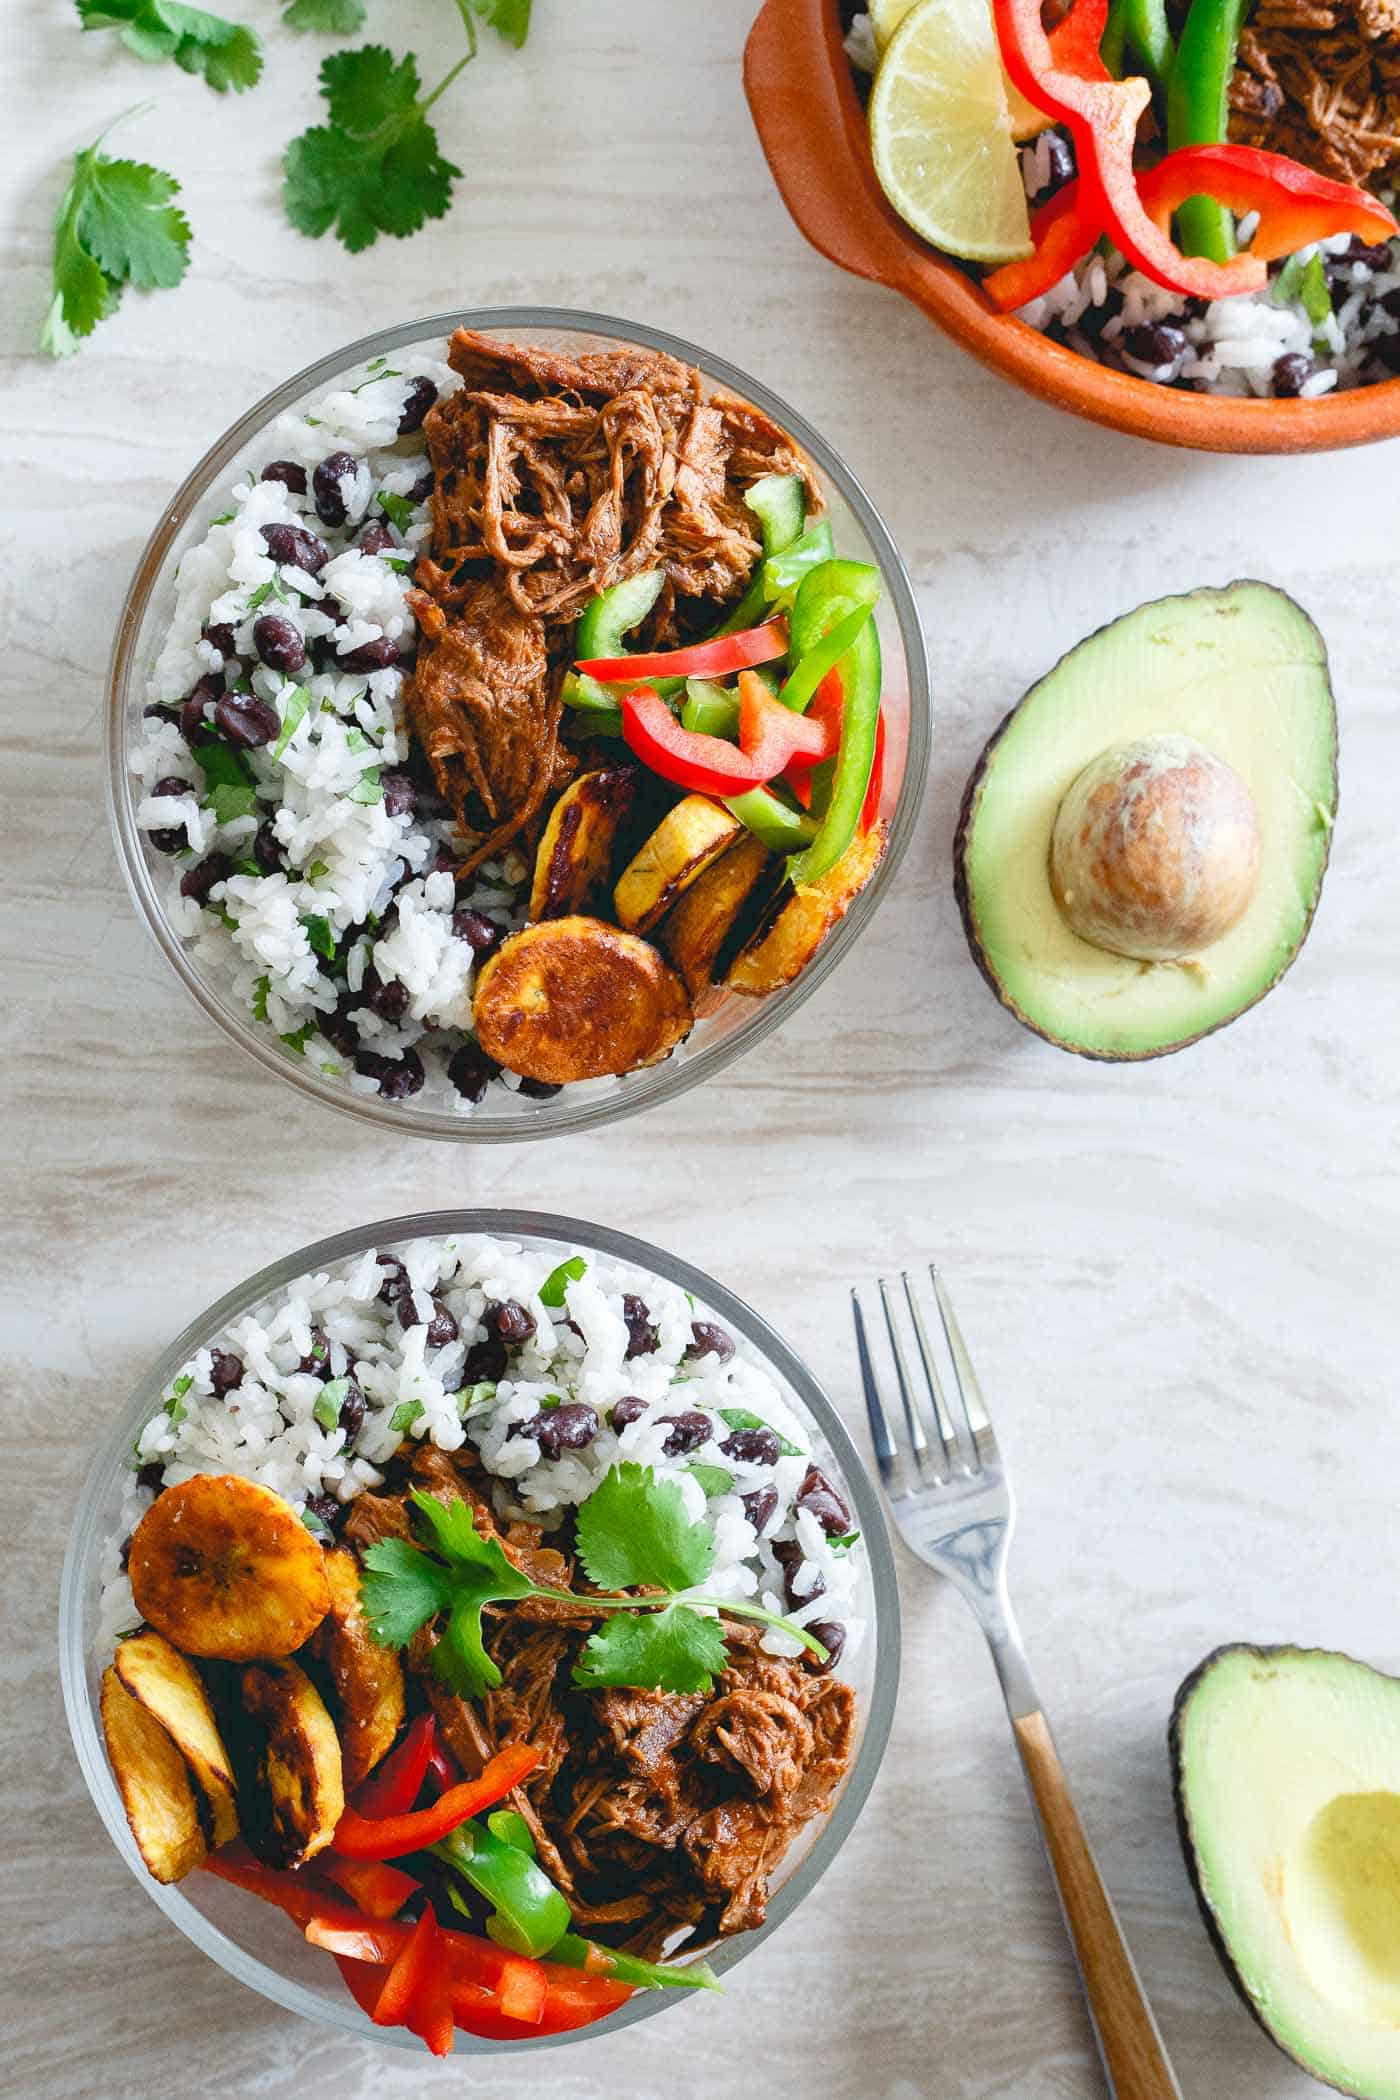 Make a batch of this slow cooker Mexican shredded beef and assemble into bowls at the start of the week for easy lunches and dinners.